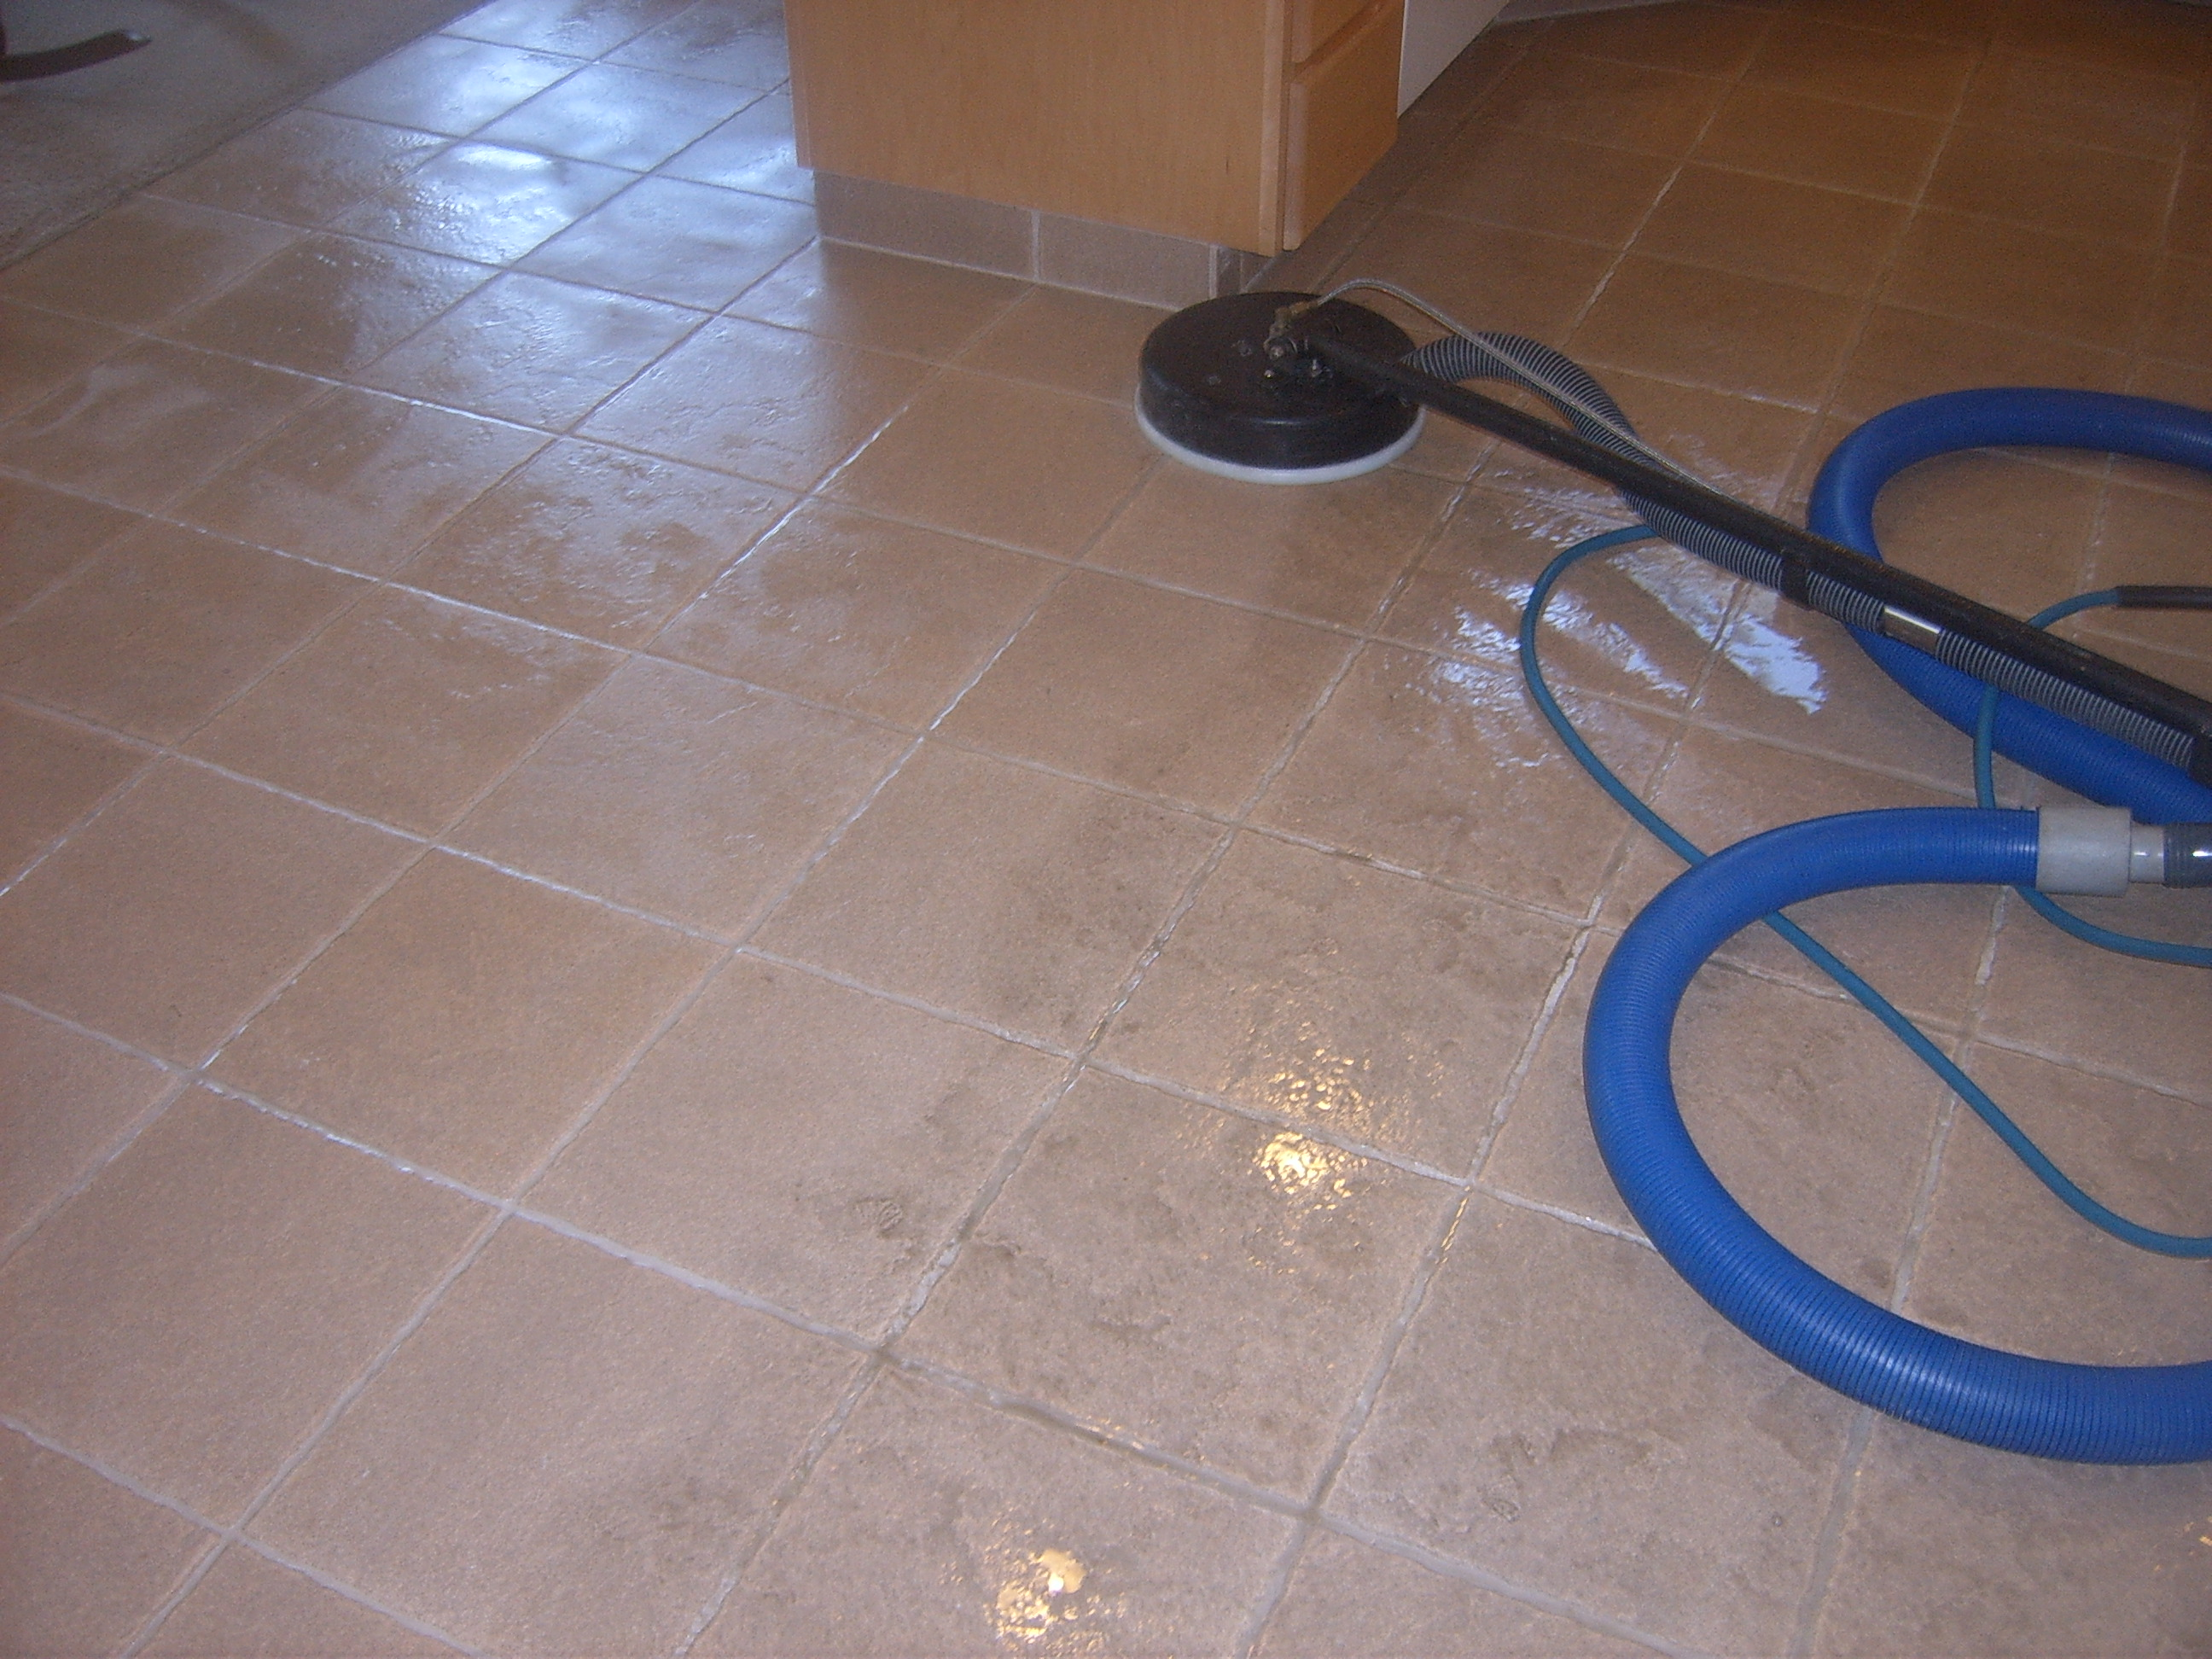 Rainbow Carpet Cleaning Ceramic Tile Grout Cleaning - How to clean bathroom floor tile grout